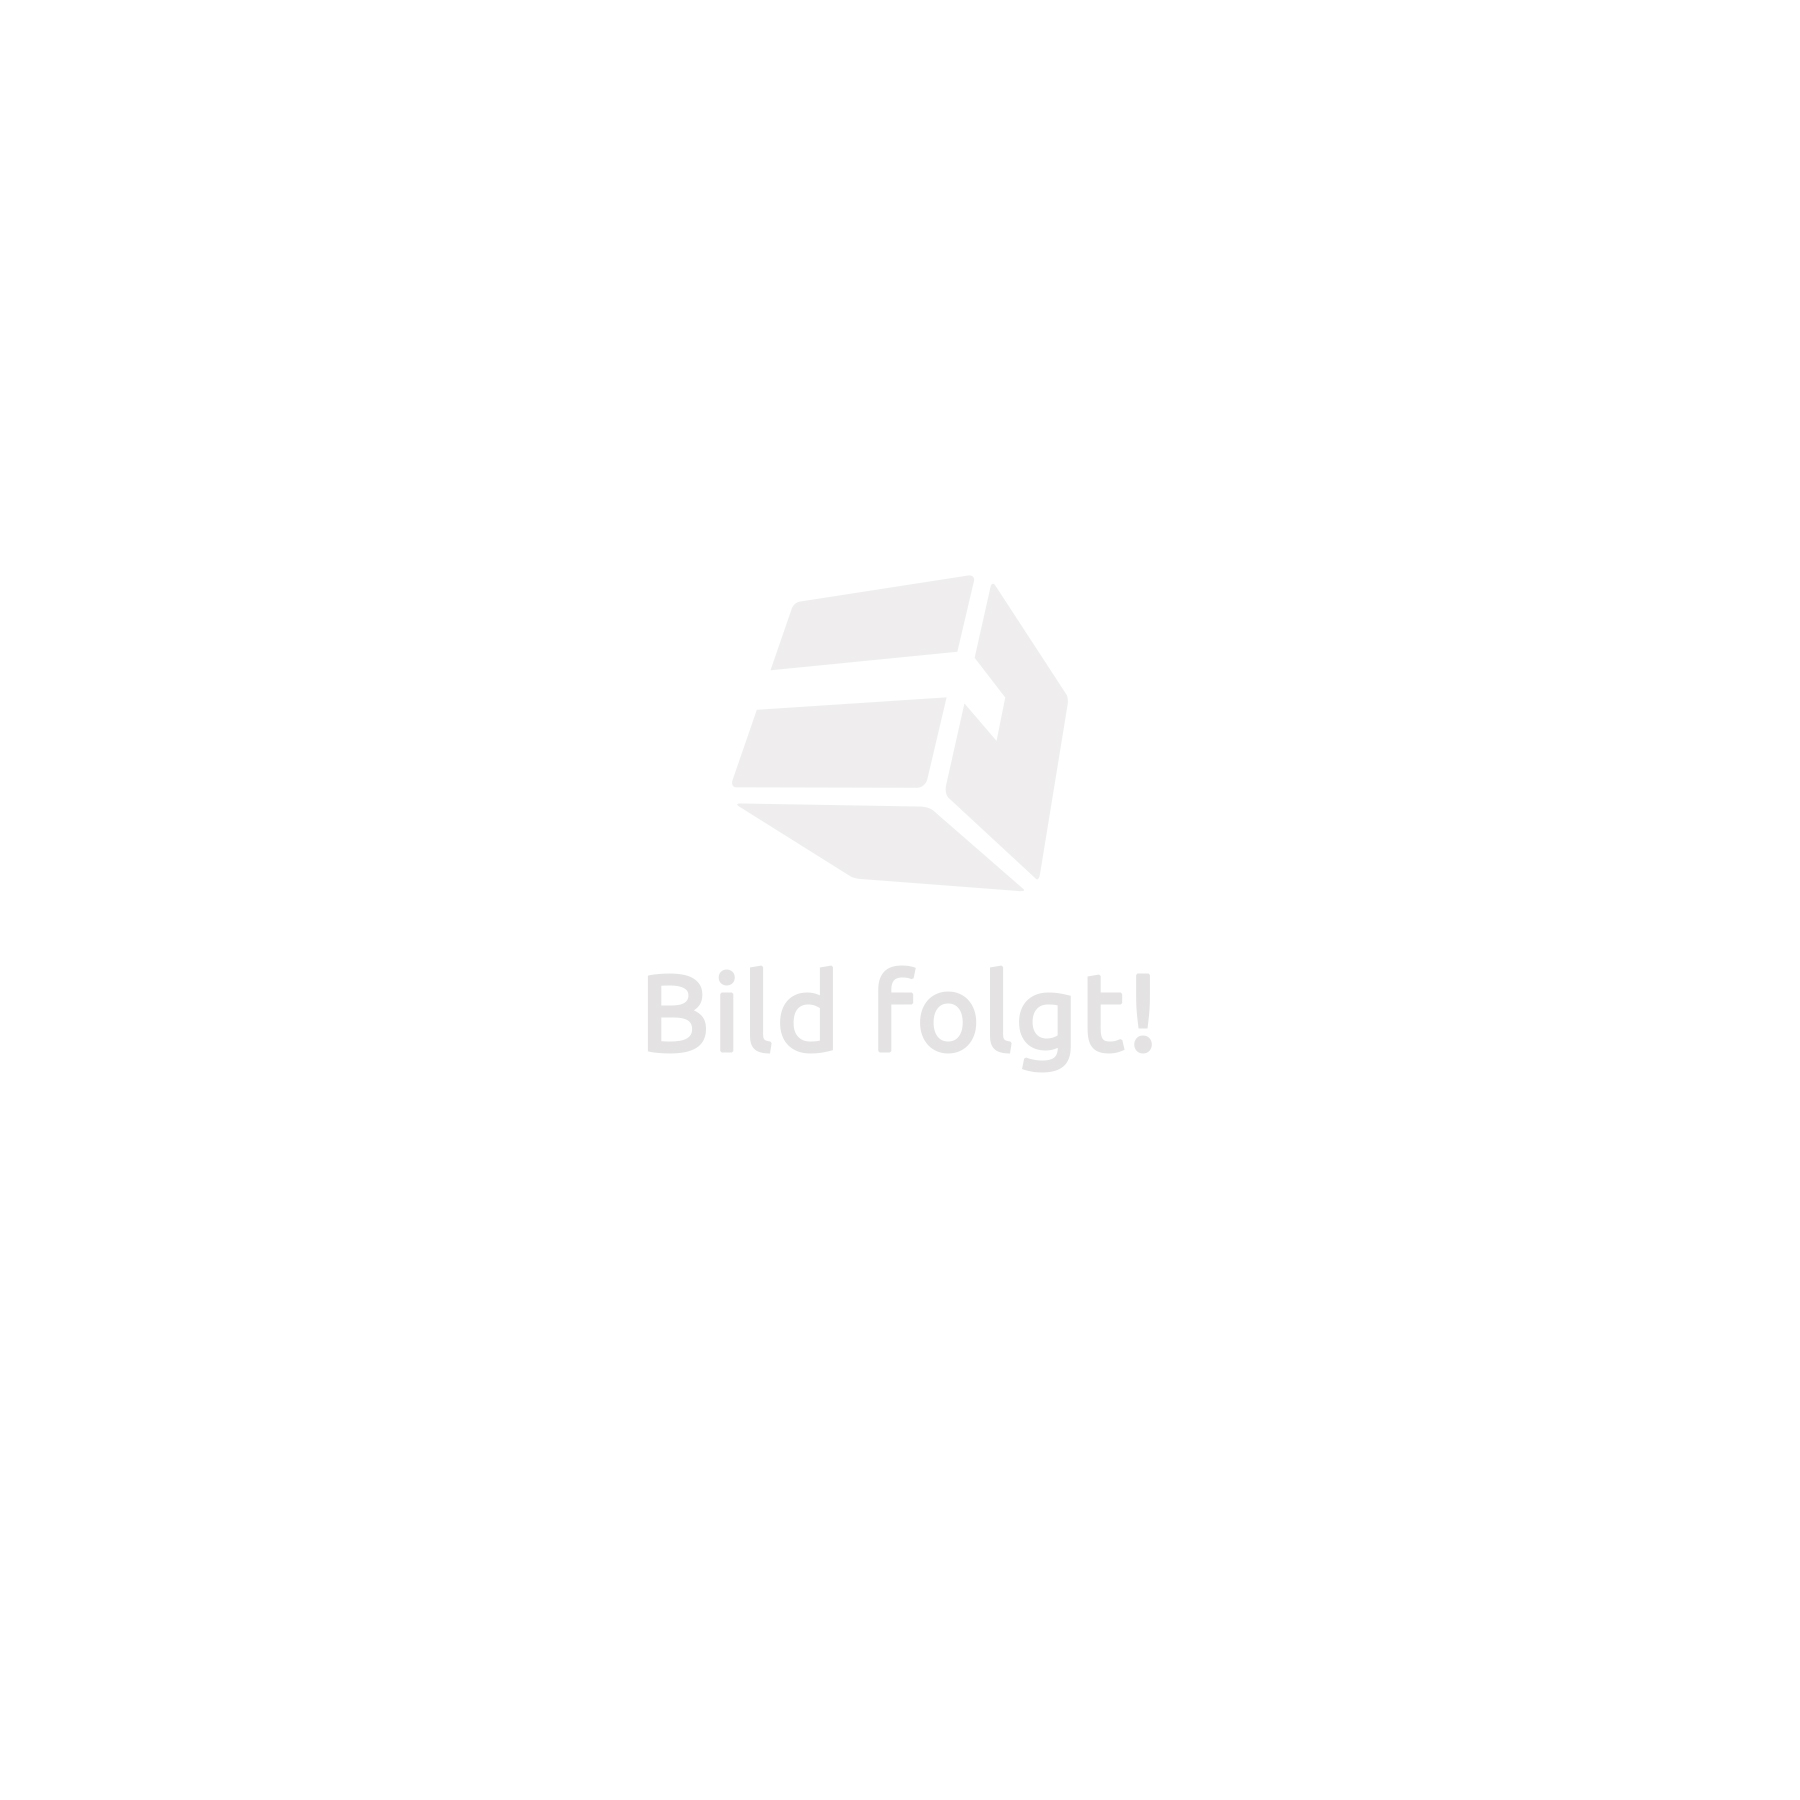 kinderkommode schubladen rollcontainer schrank rollwagen kinderzimmer blau wei ebay. Black Bedroom Furniture Sets. Home Design Ideas